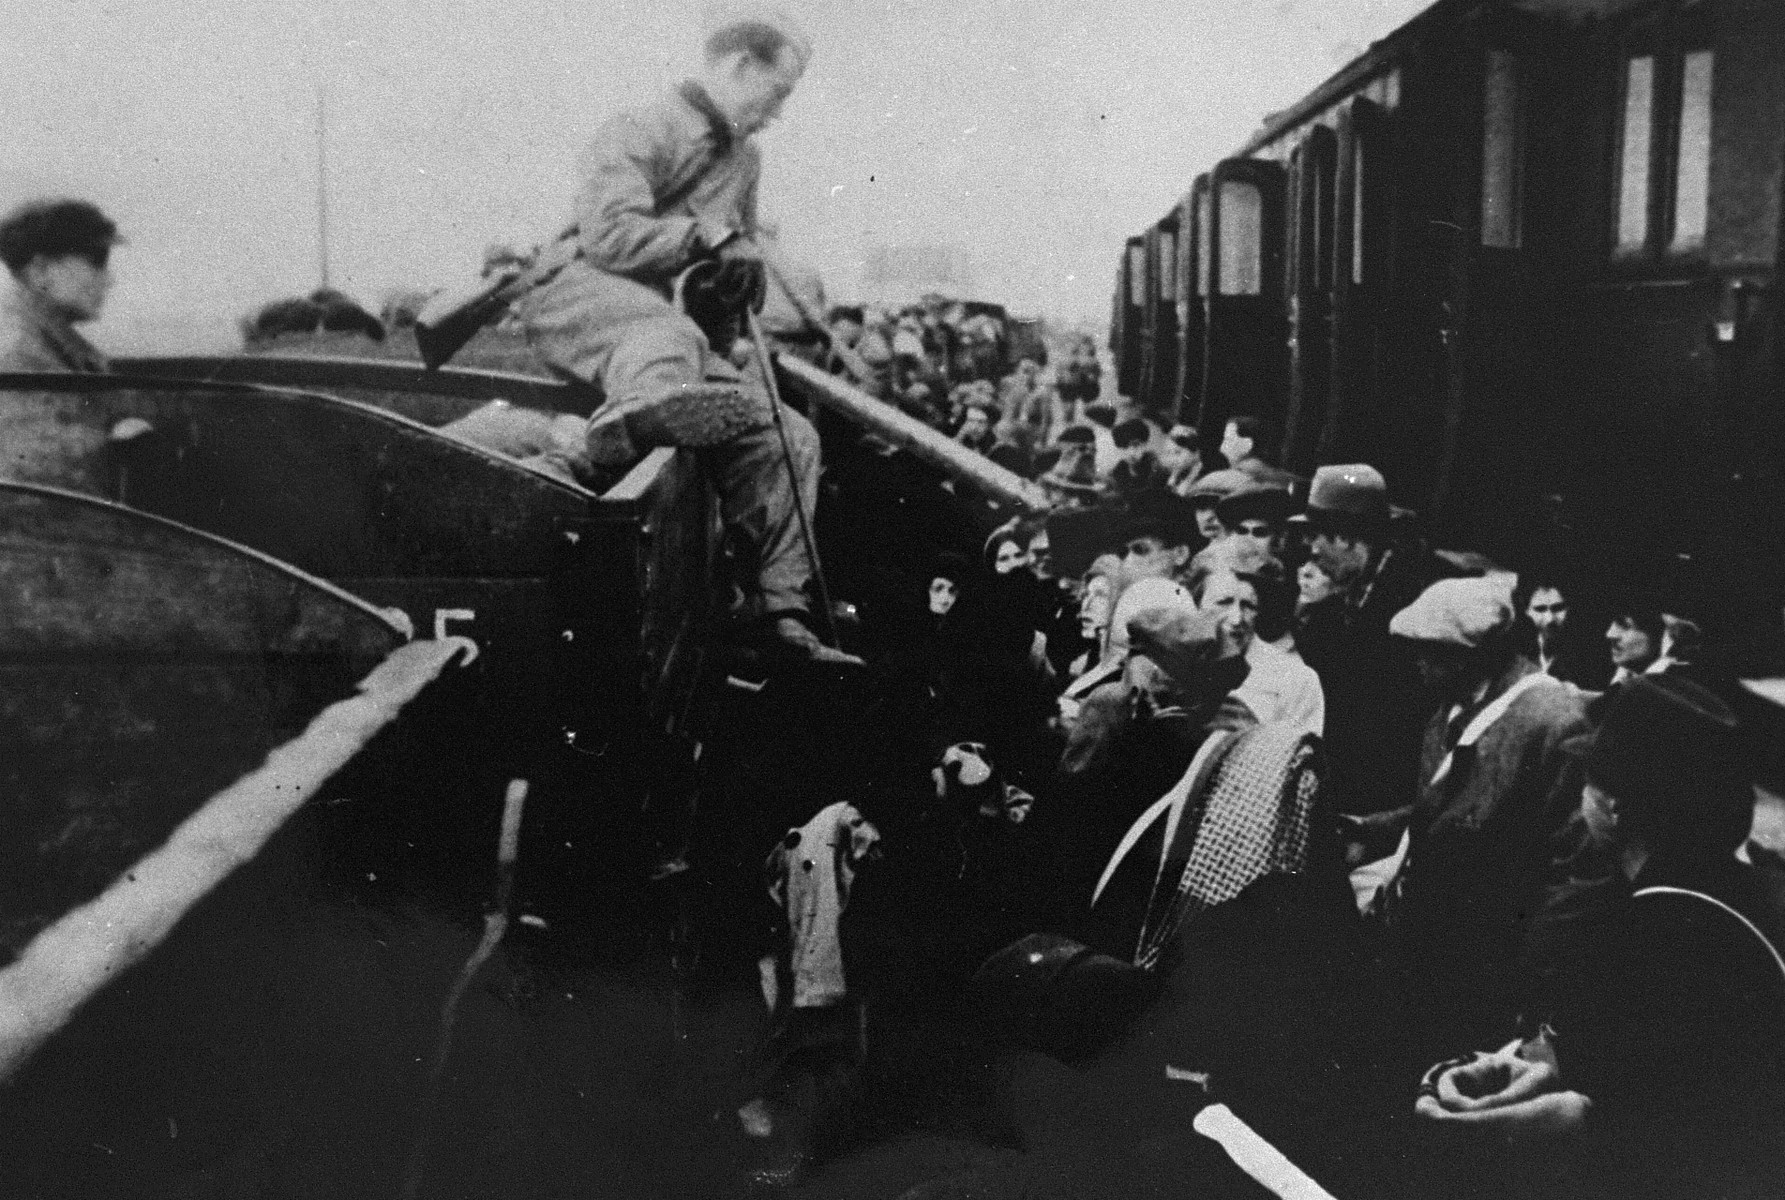 Jewish deportees from the Lodz ghetto who are being taken to the Chelmno death camp, are transferred from a closed passenger train to a train of open cars at the Kolo train station.